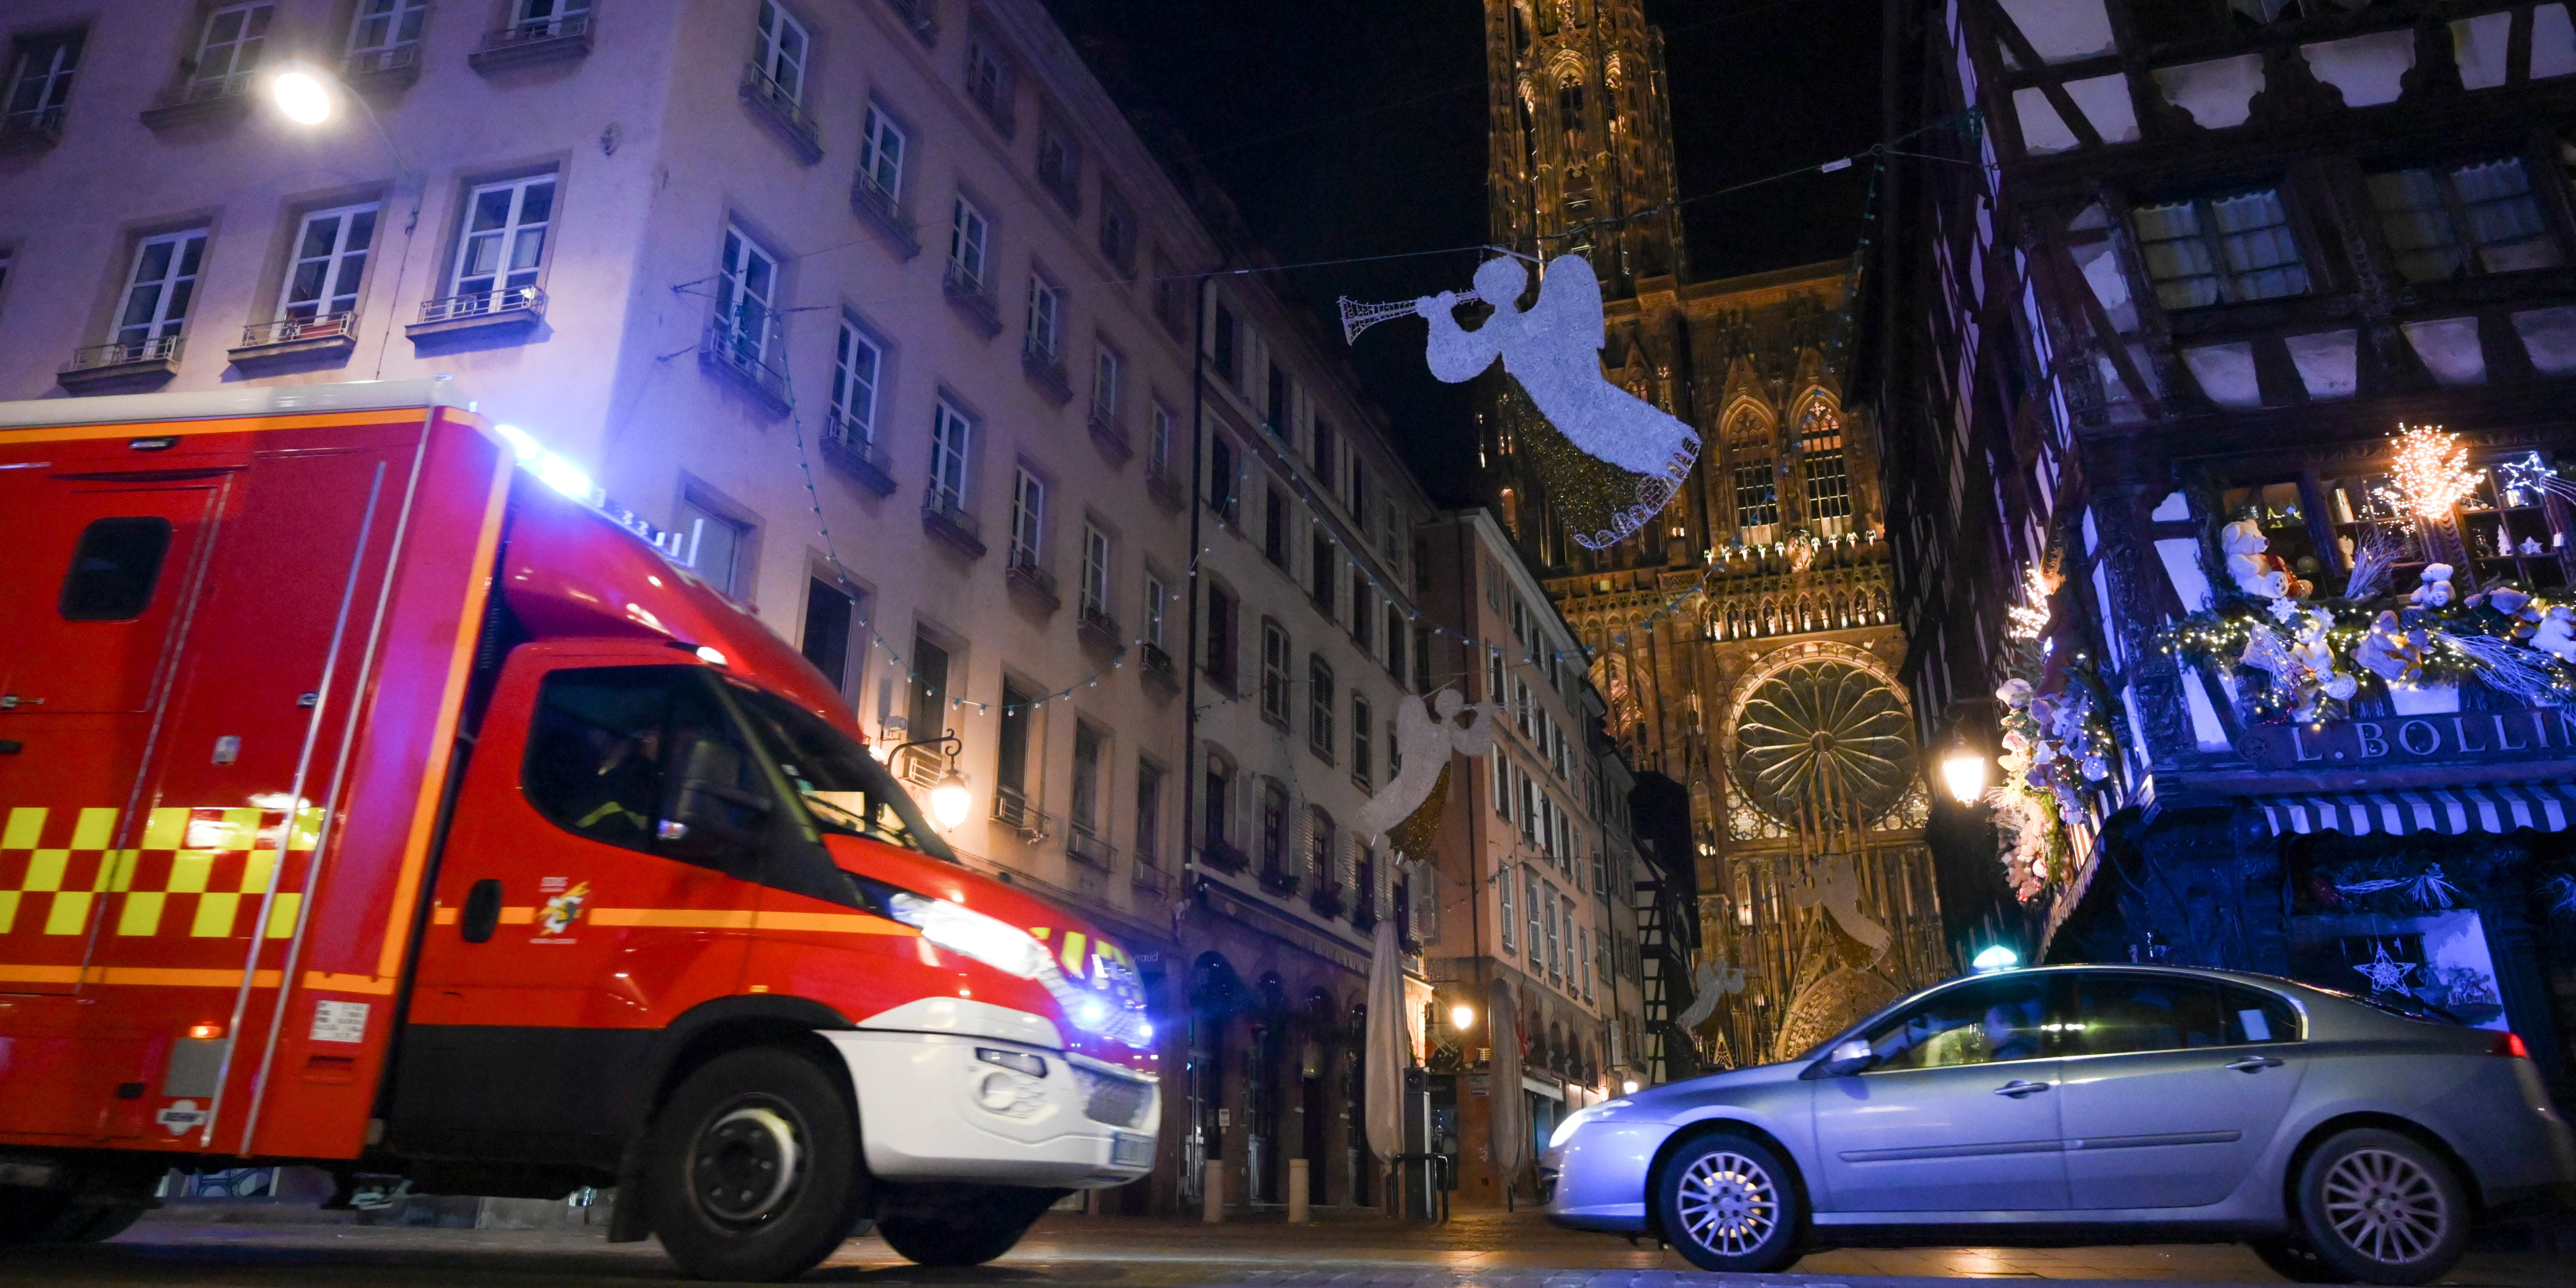 STRASBOURG ATTACKAn emergency medical response vehicle passes by the cathedral in Strasbourg, after a shooting breakout, on December 11, 2018. - A gunman killed at least three people and seriously injured another 11 near the famed Christmas market in the French city of Strasbourg before fleeing the scene, security officials said. Police launched a manhunt after the killer opened fire at around 7pm local time (1800 GMT), sending crowds of evening shoppers fleeing for safety. (Photo by SEBASTIEN BOZON / AFP)